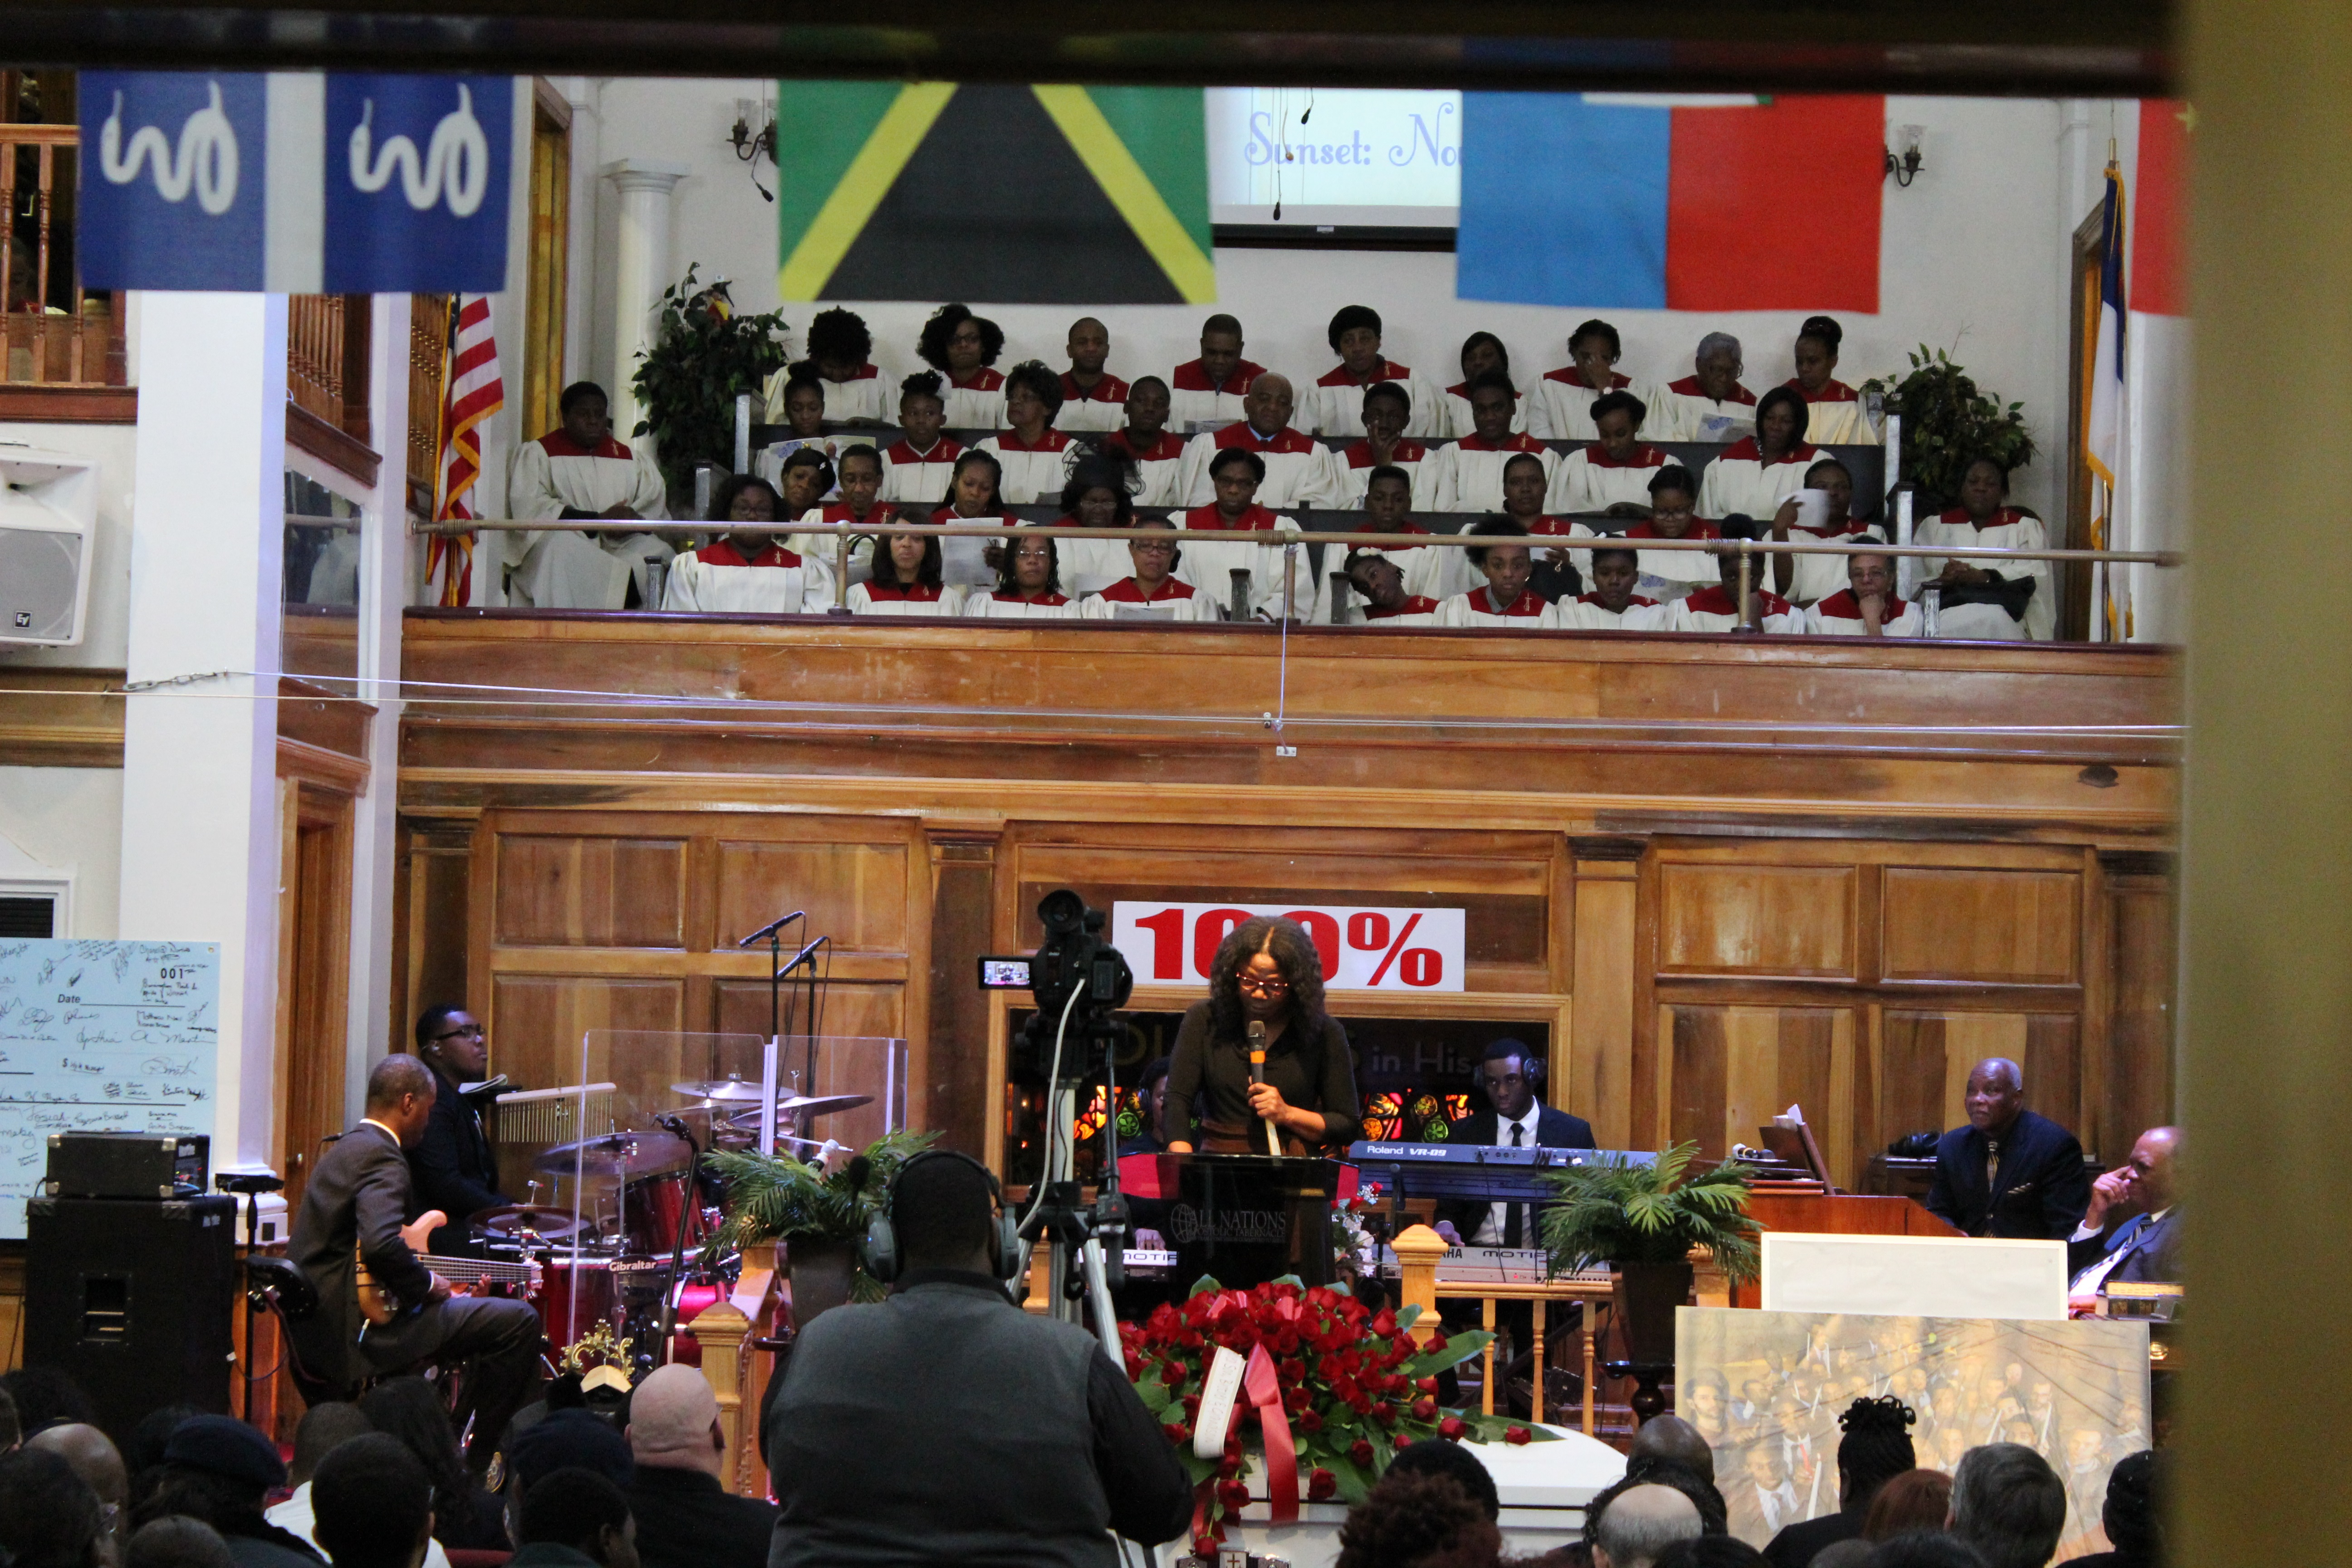 Karen Jones (podium) delivers Delano Cowan's eulogy at the All Nation's Apostolic Tabernacle church in Queens, New York on December 4, 2015.